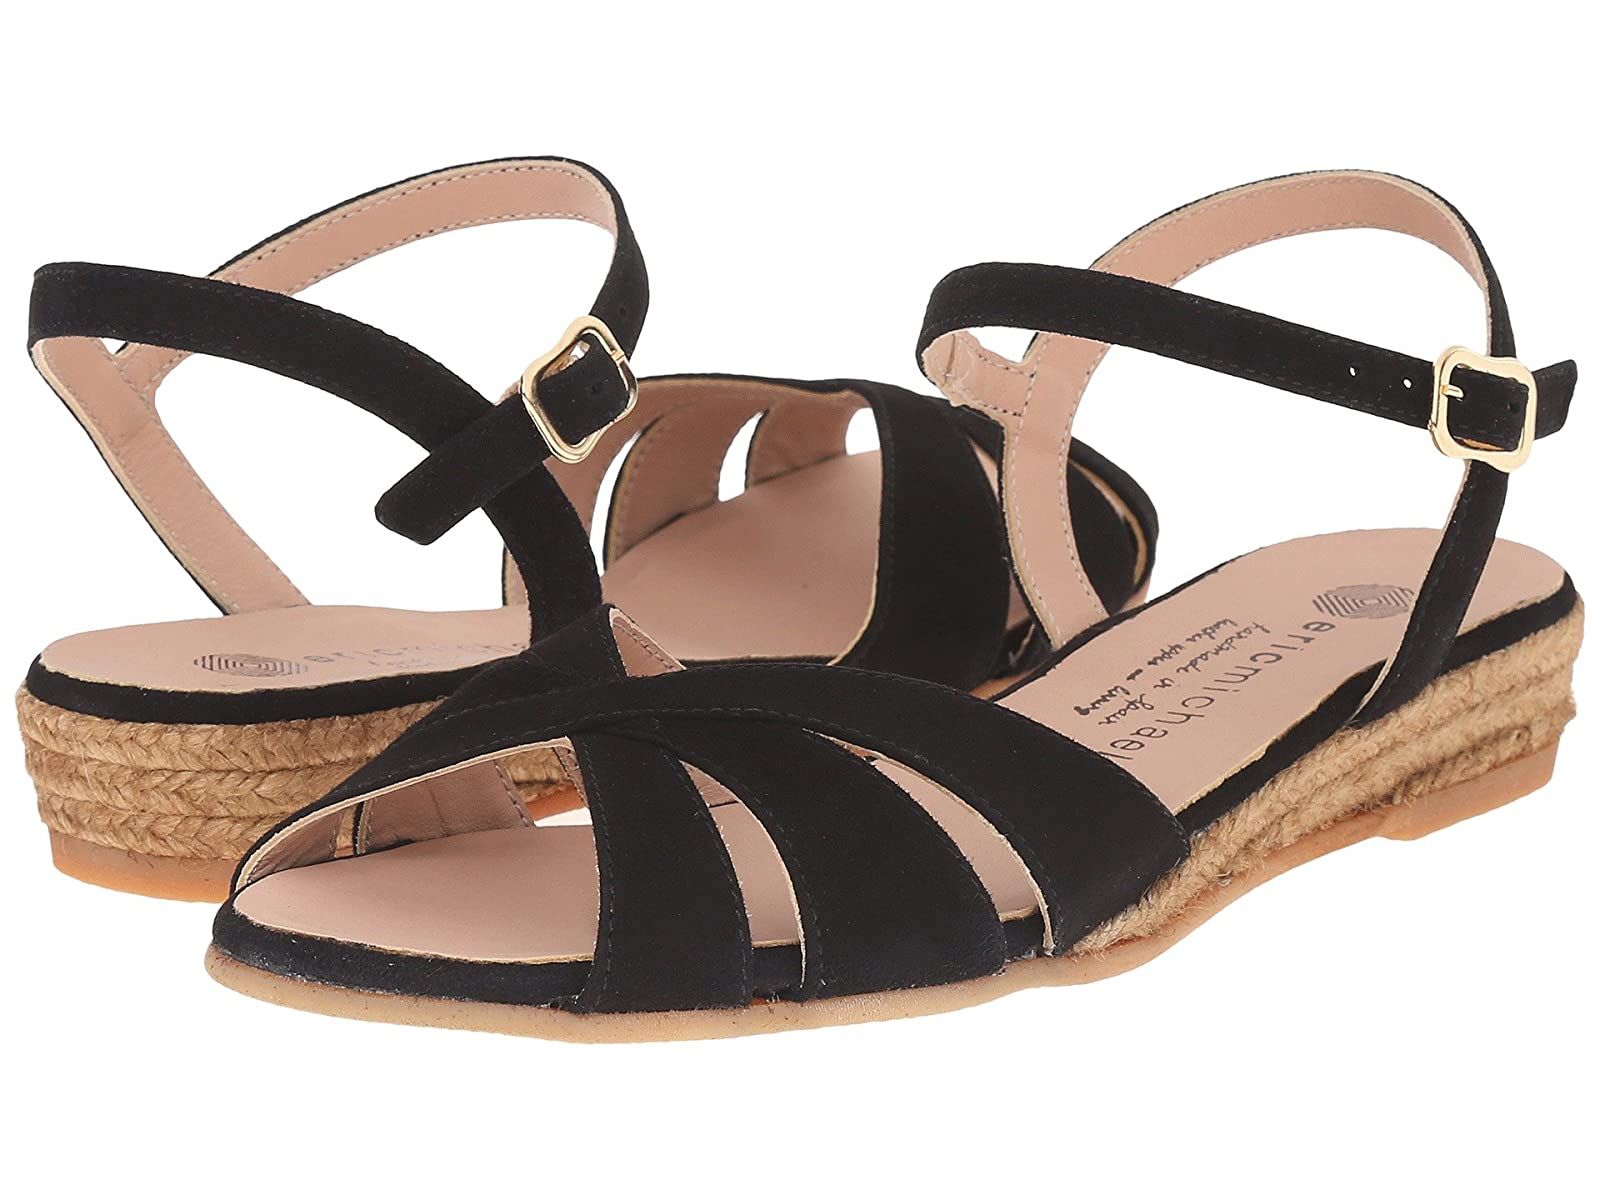 Eric Michael VanessaAtmospheric grades have affordable shoes